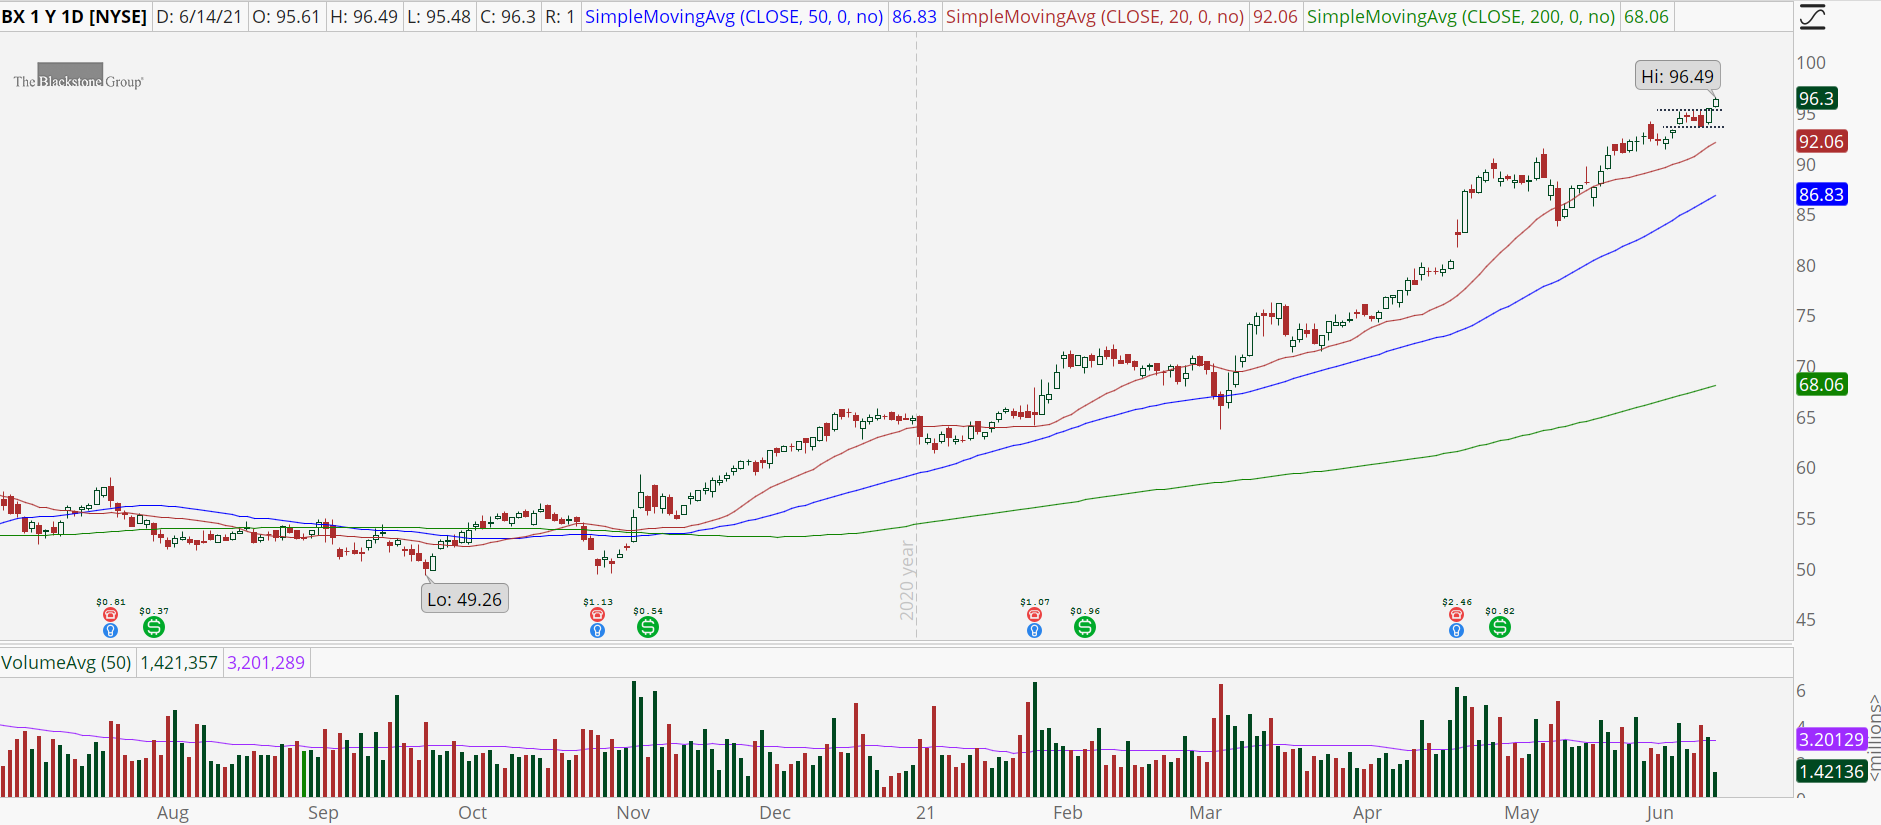 Blackstone Group (BX) stock chart with robust uptrend.